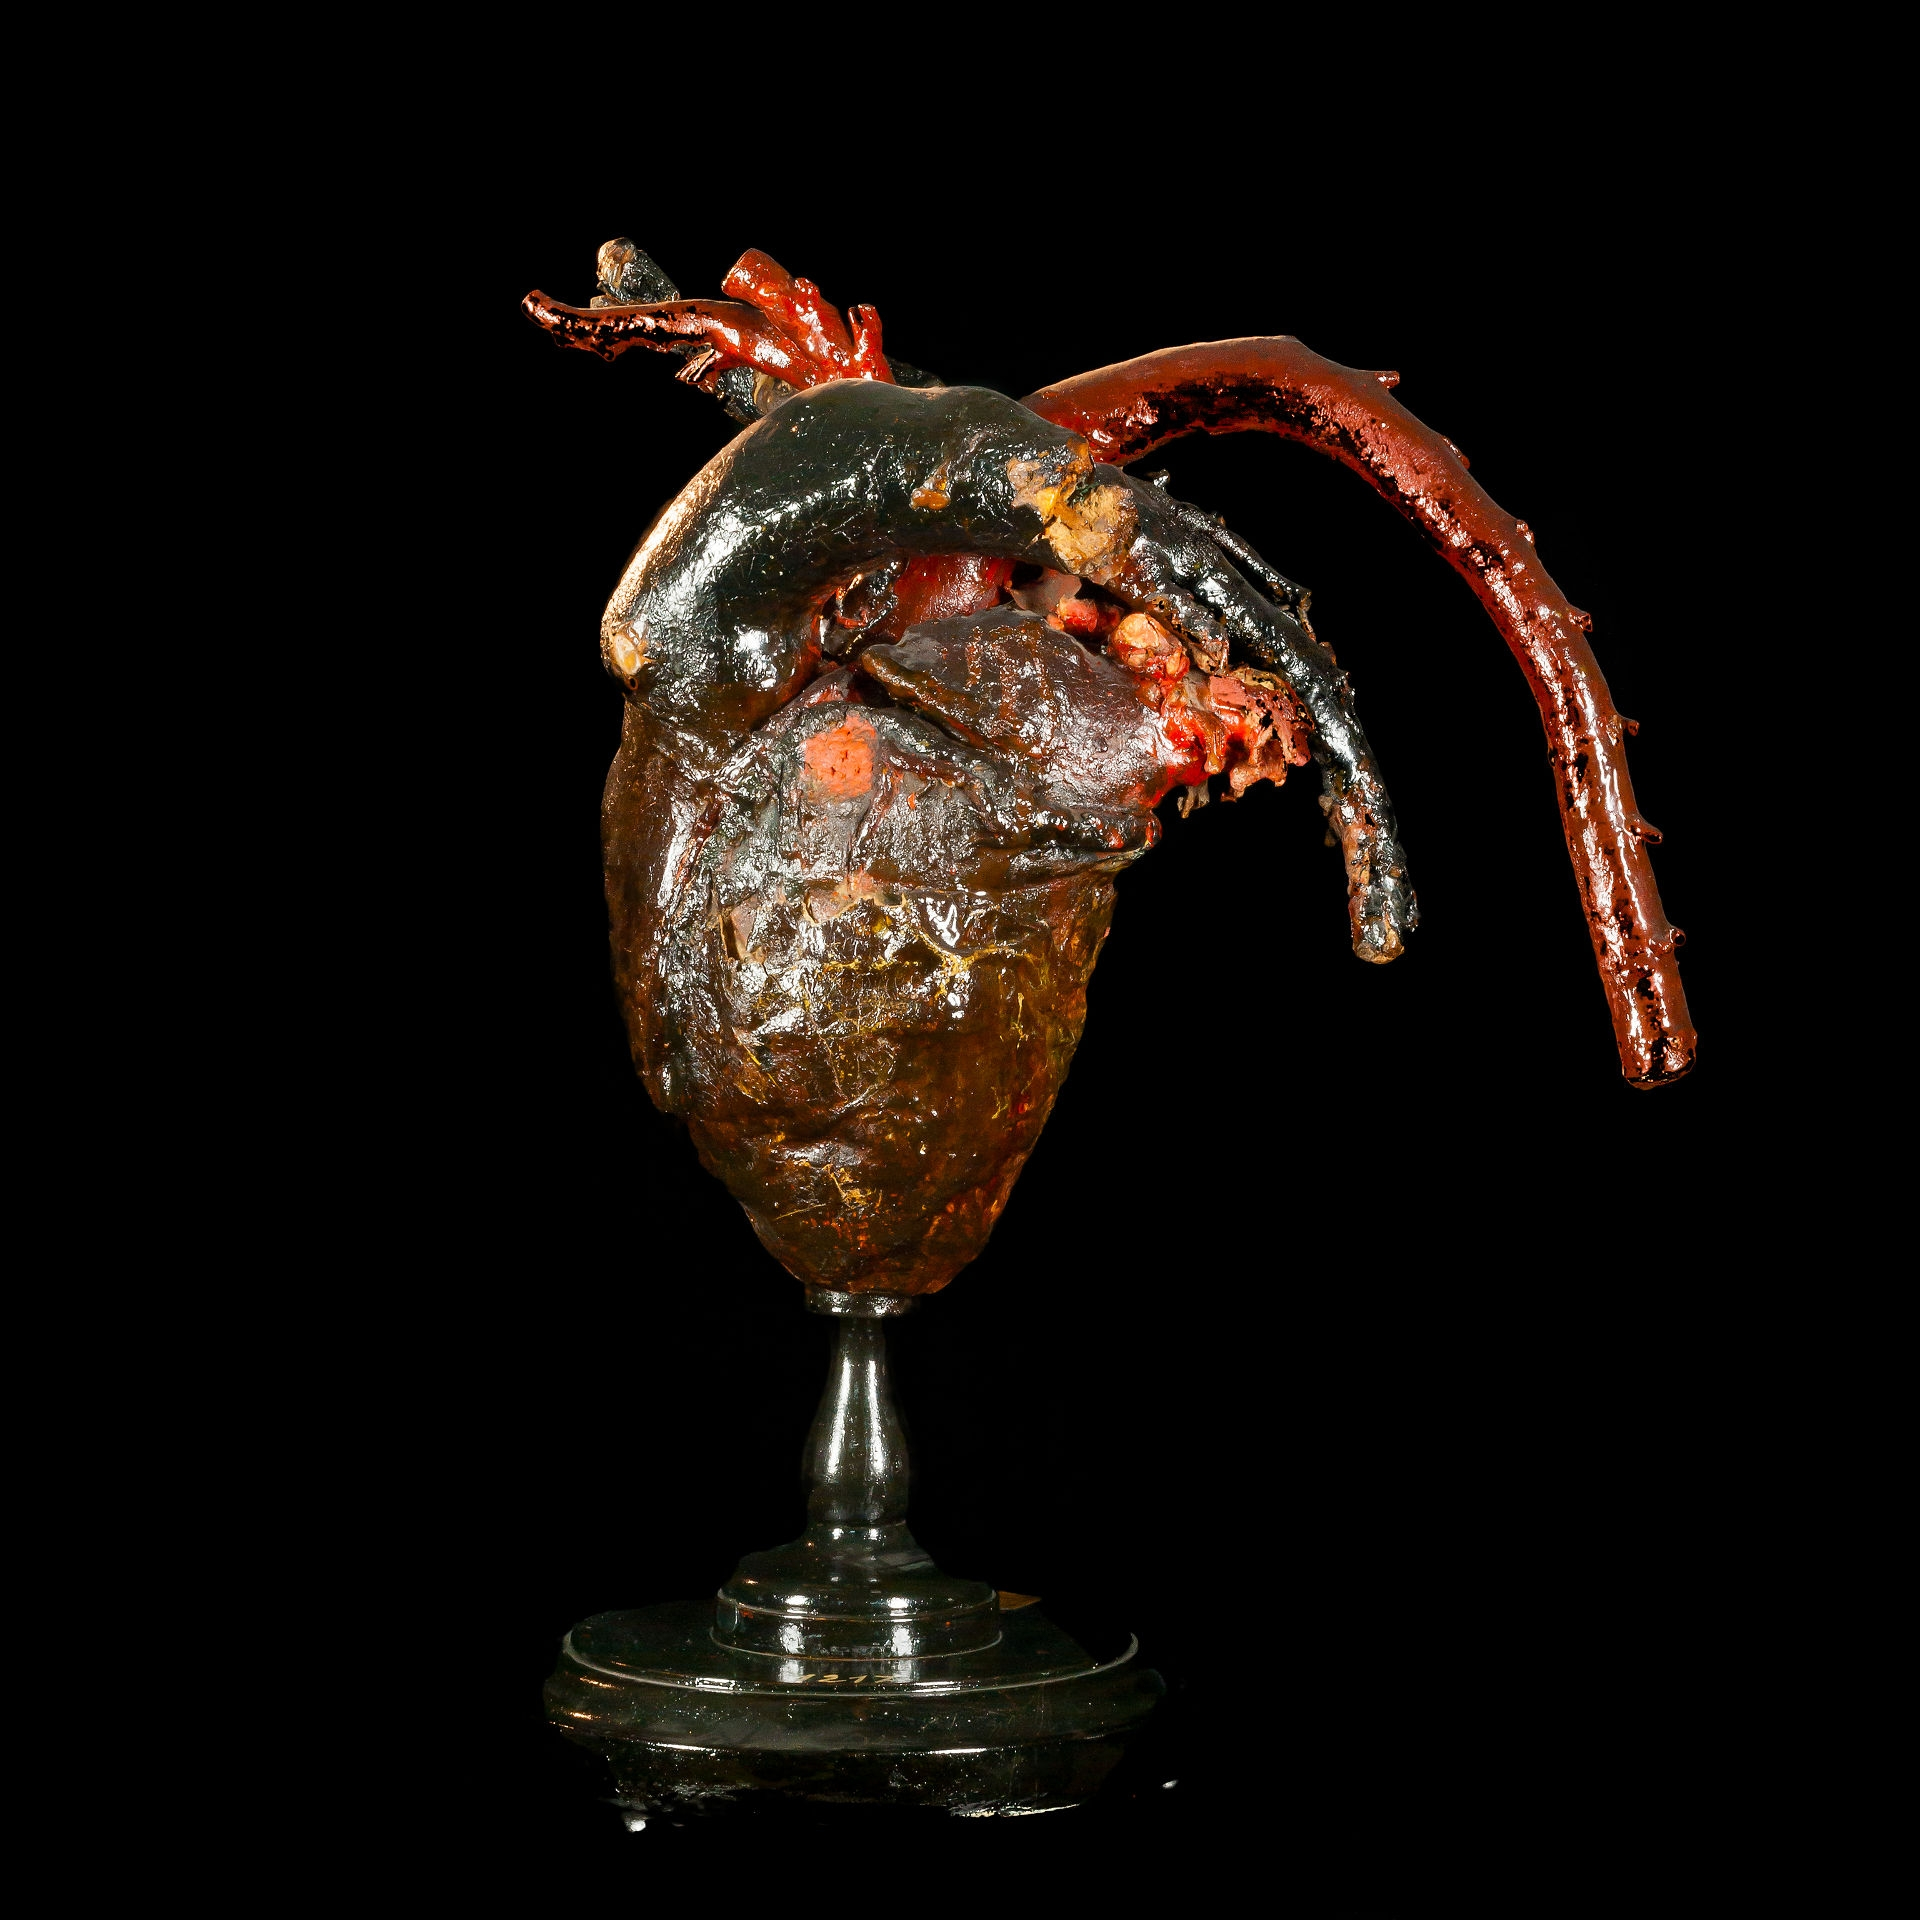 Equine heart